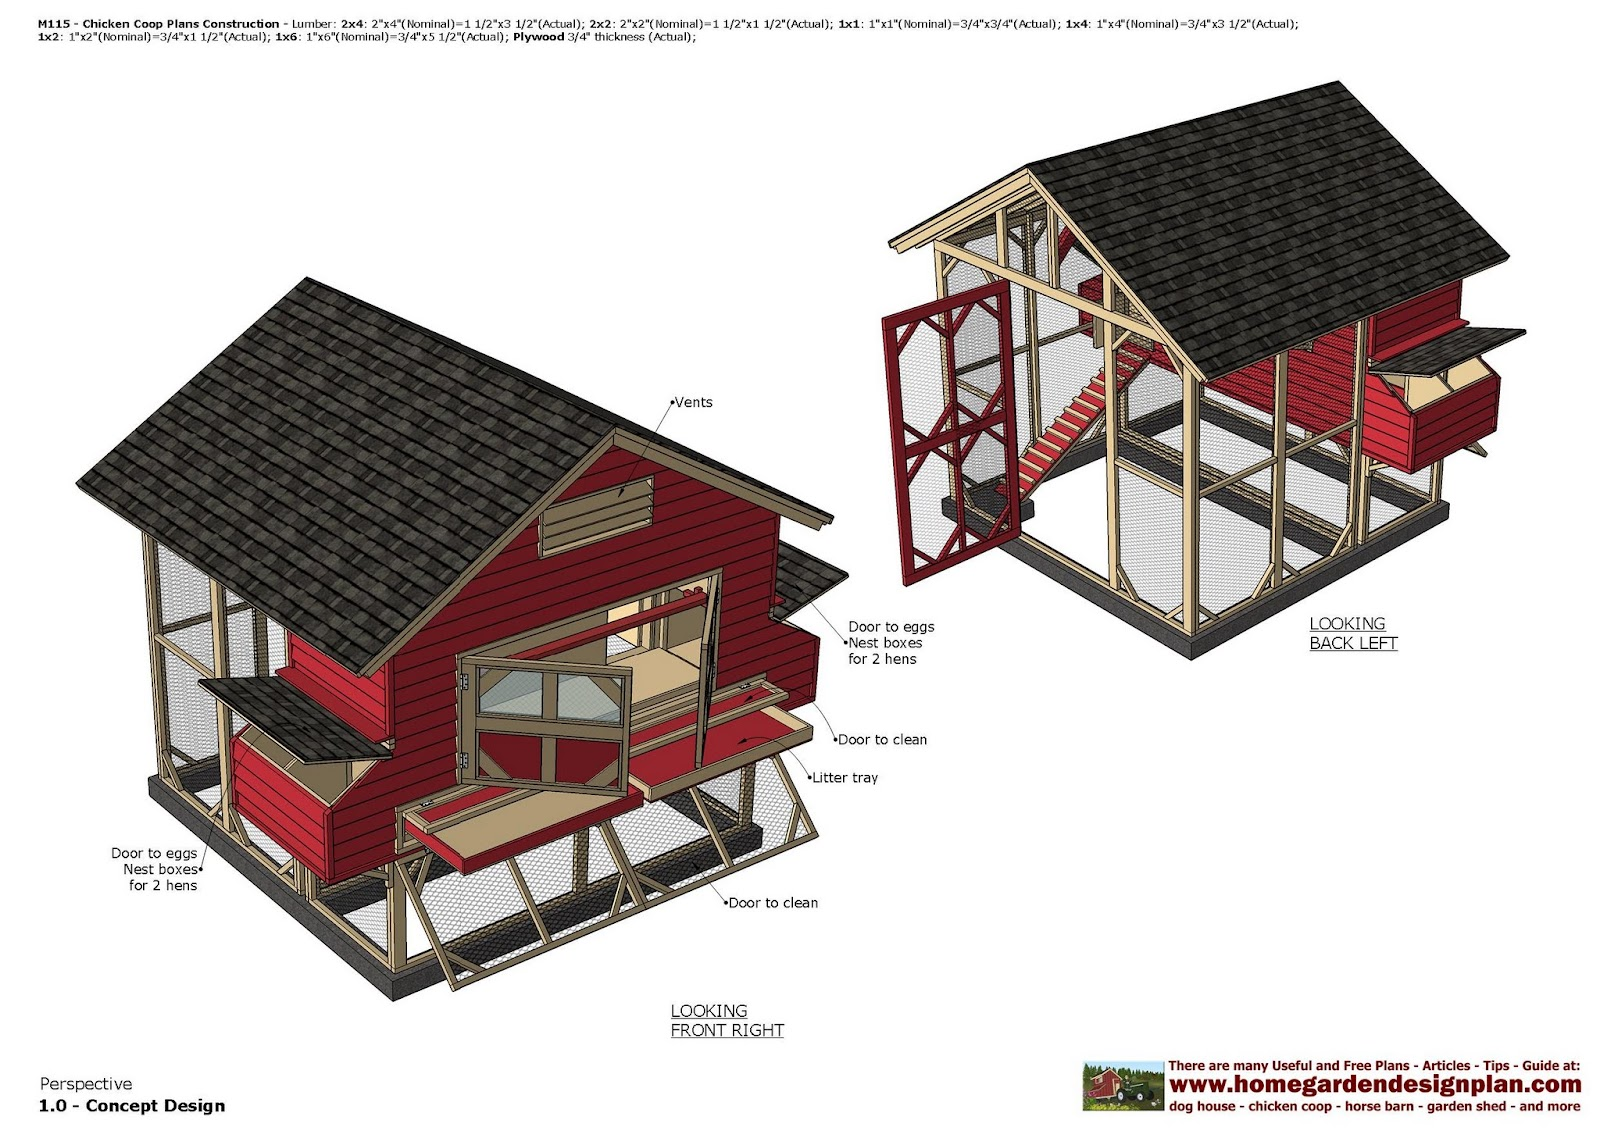 Home garden plans m115 chicken coop plans chicken for Plans for a chicken coop for 12 chickens